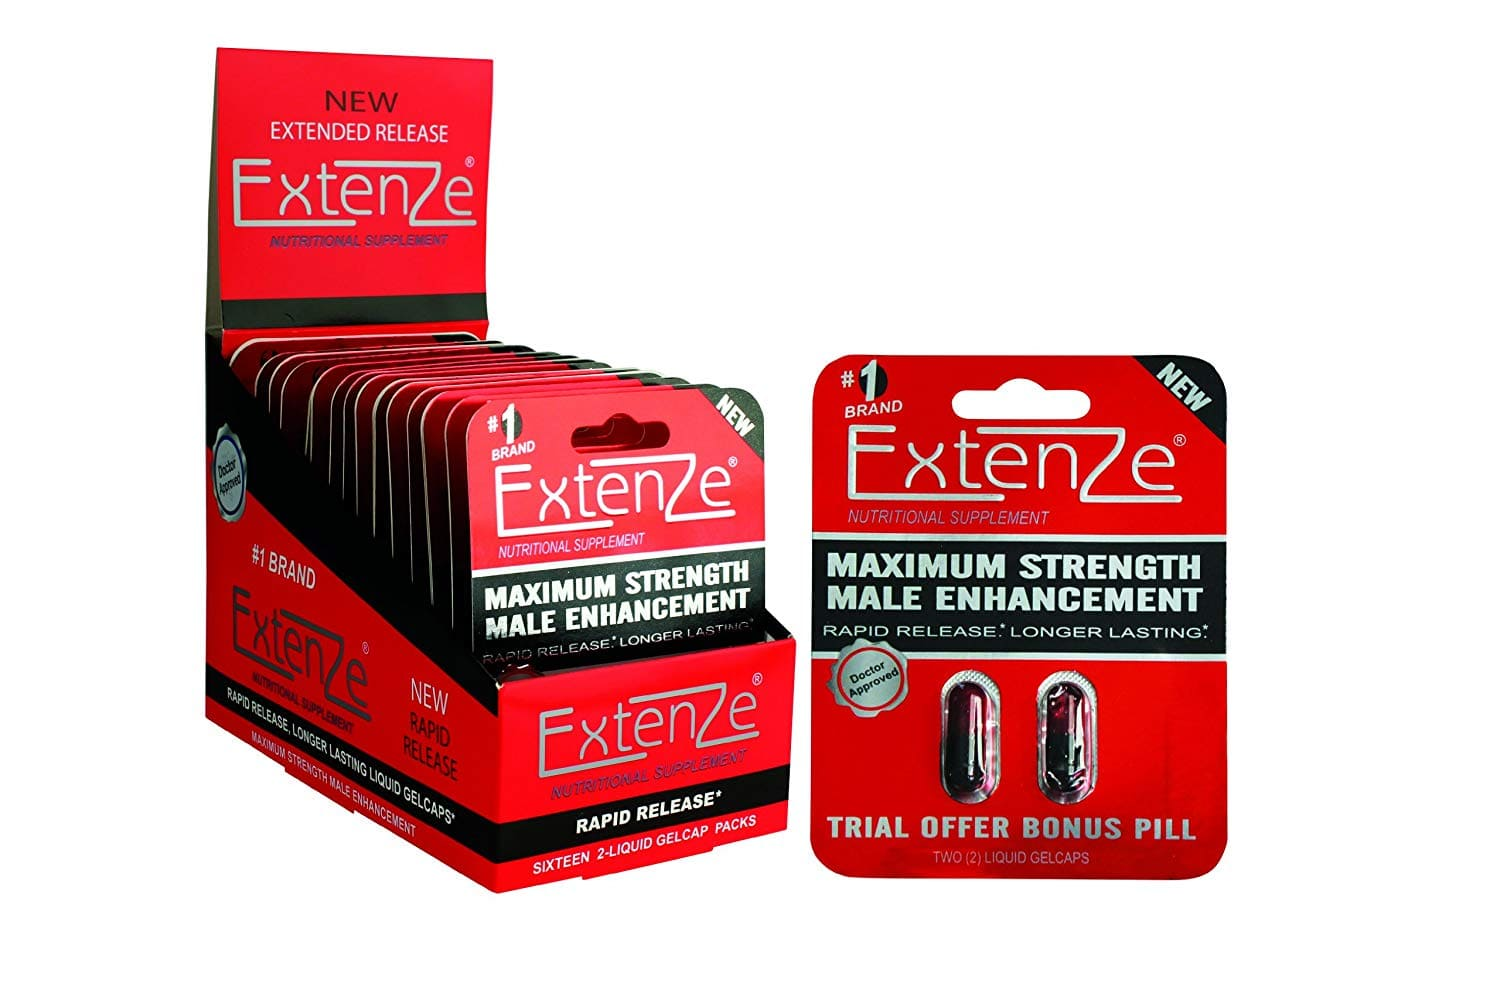 Extenze Male Enhancement Pills buy now pay later